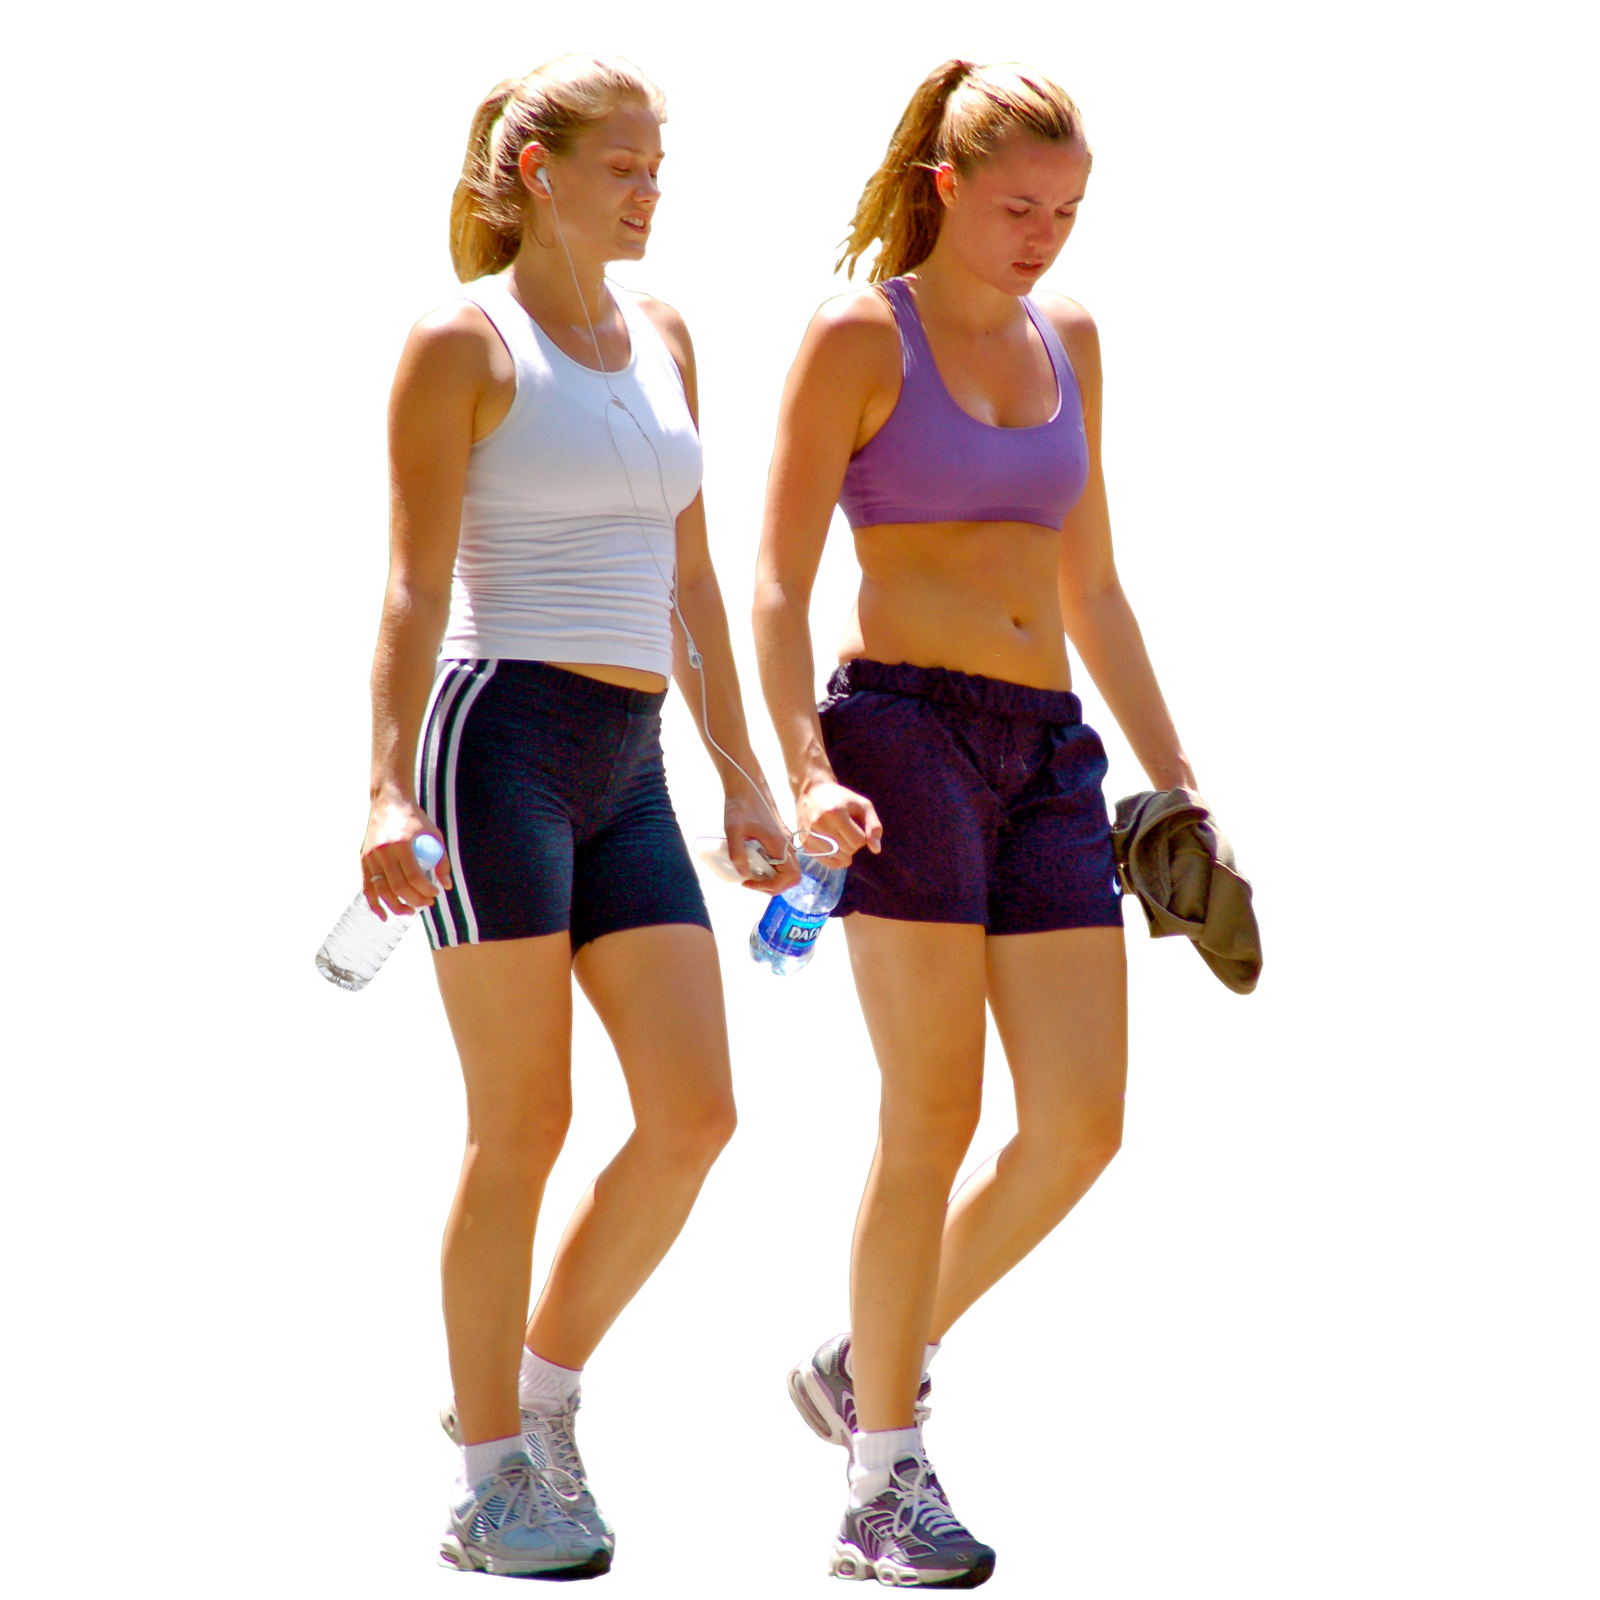 Running people png. Sport transparent background mart